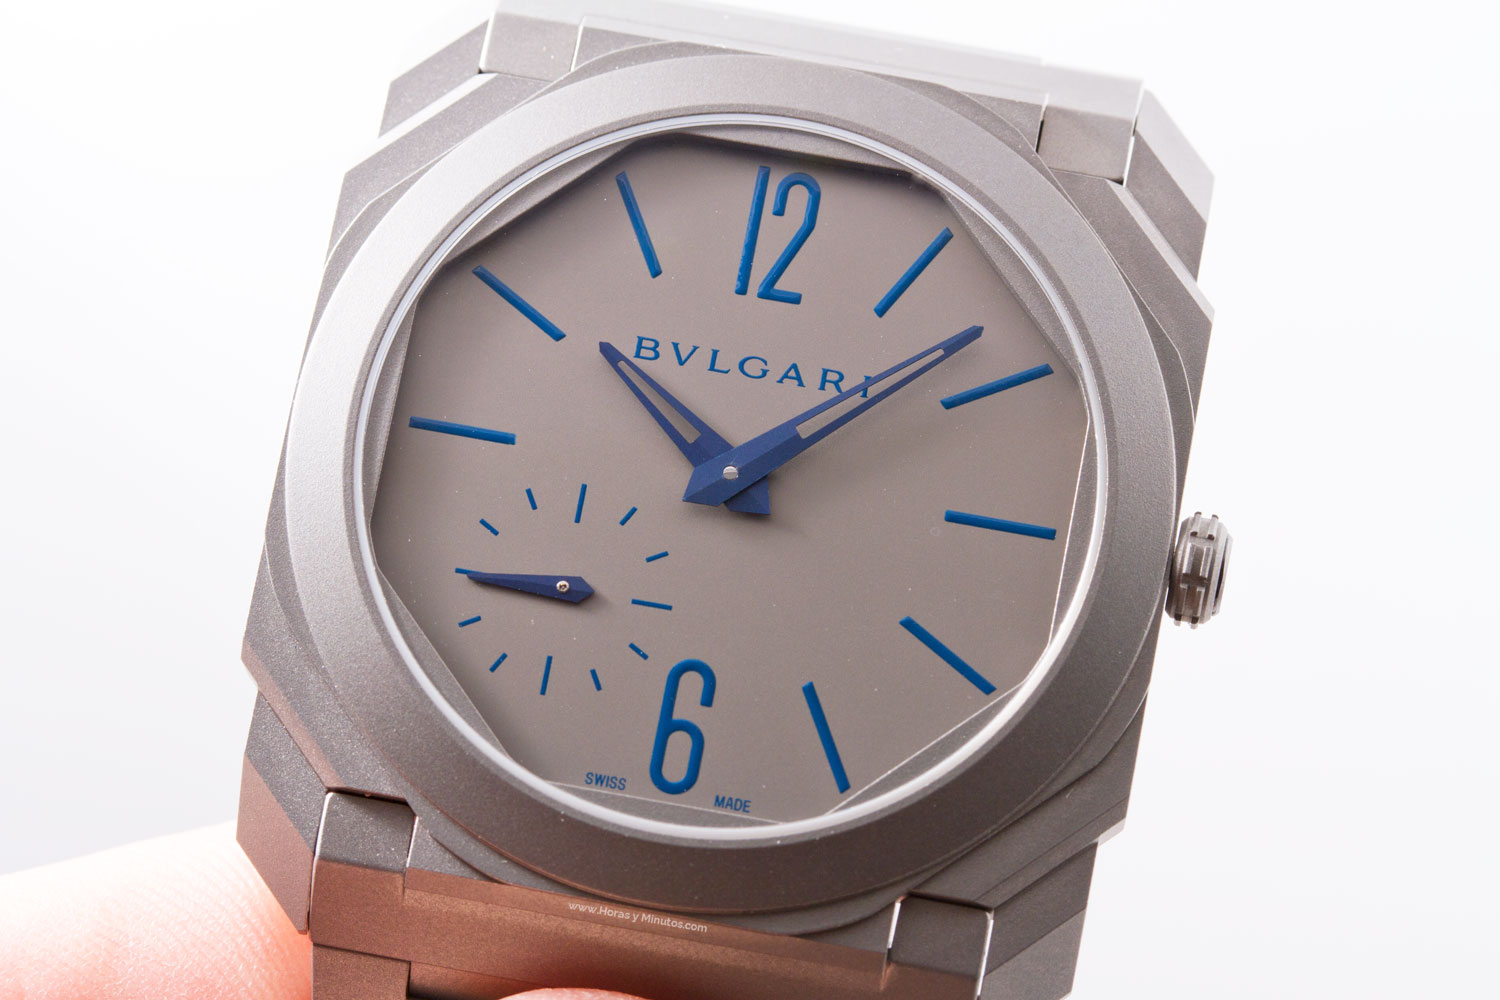 Bulgari Octo Finissimo Automatic Sandblasted